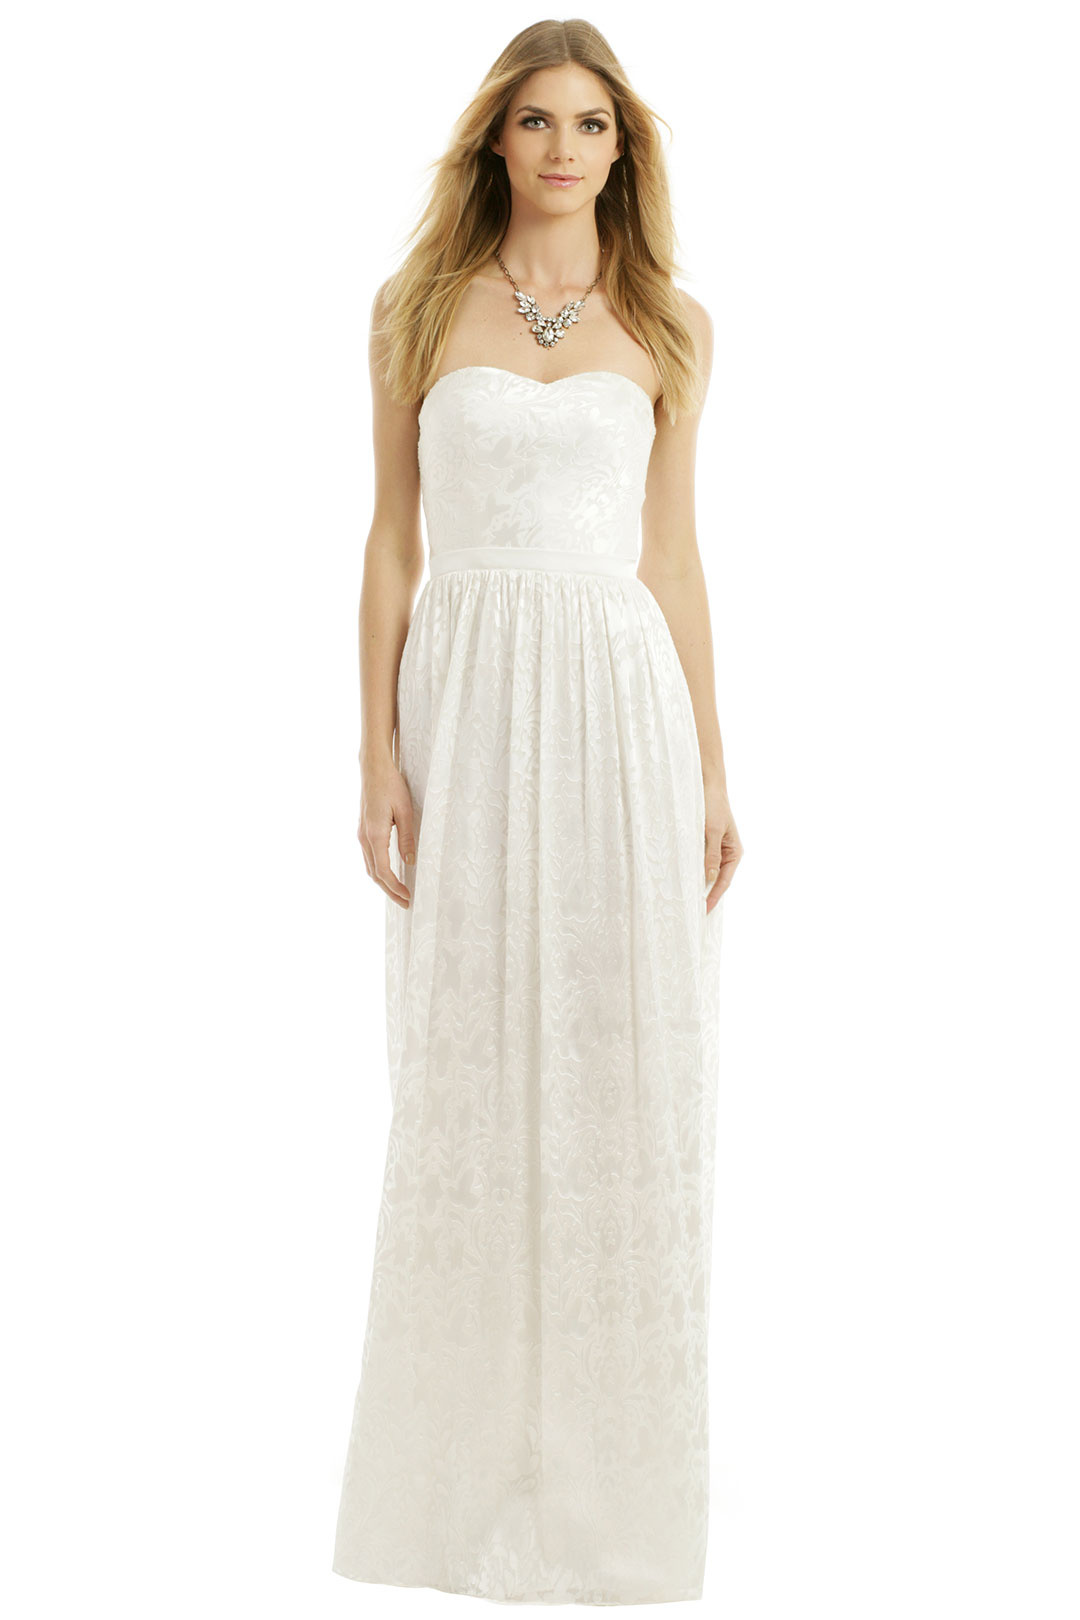 rentable designer dresses for summer weddings rental wedding dresses Strapless and flowy with a shimmering silk pattern overlay this dress is lightweight enough to keep you cool in the hot sun and is according to reviews